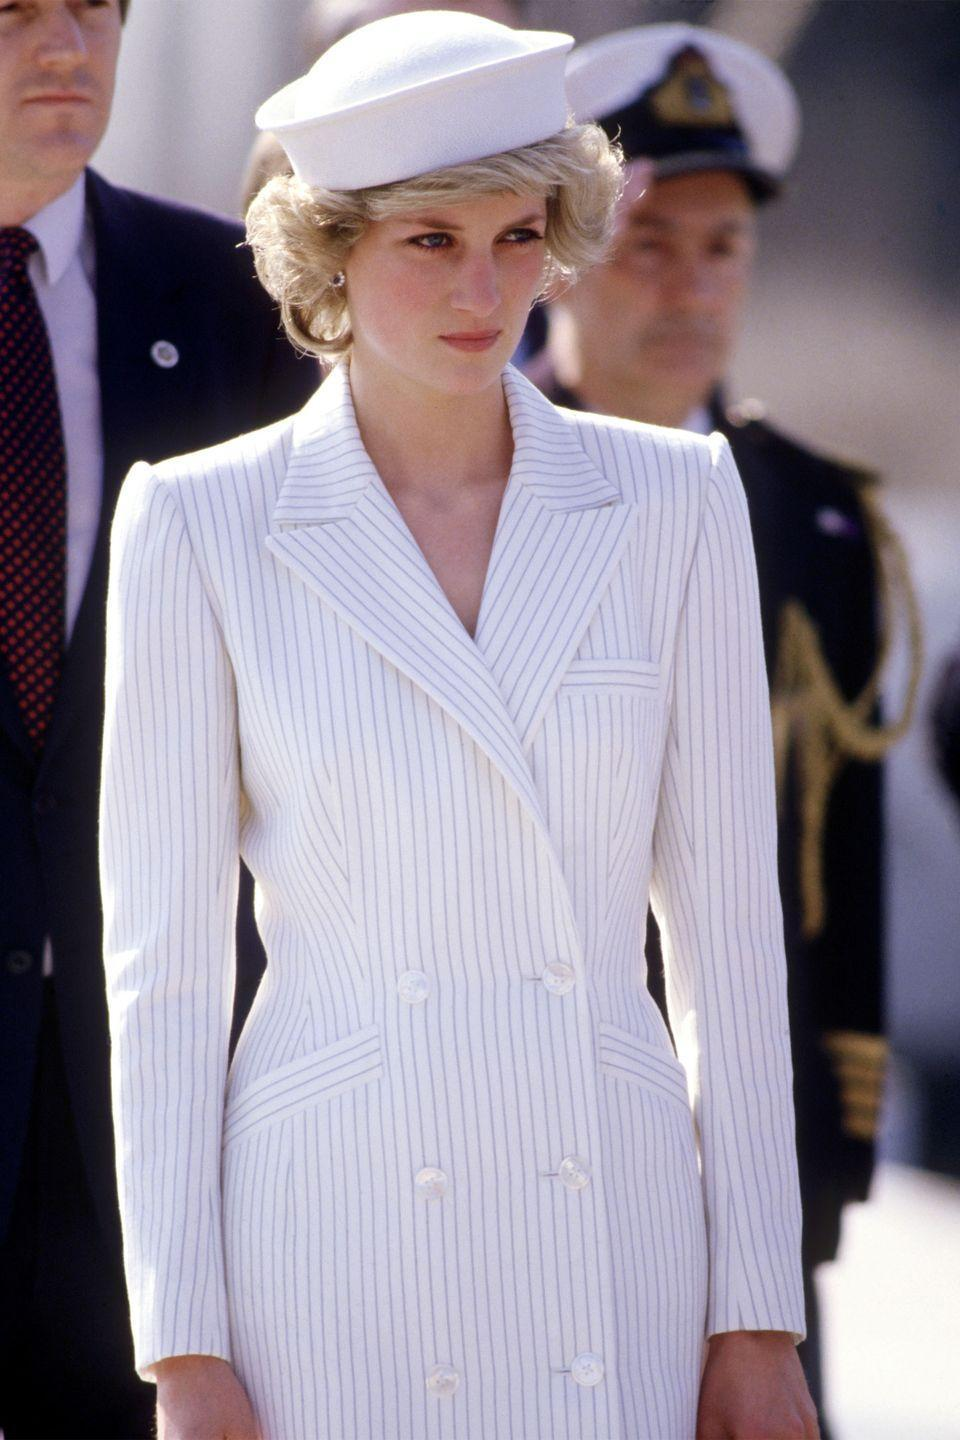 <p>In a dress by Catherine Walker and hat by Kangol arriving at a naval base in La Spezia during the Royal Tour of Italy.</p>